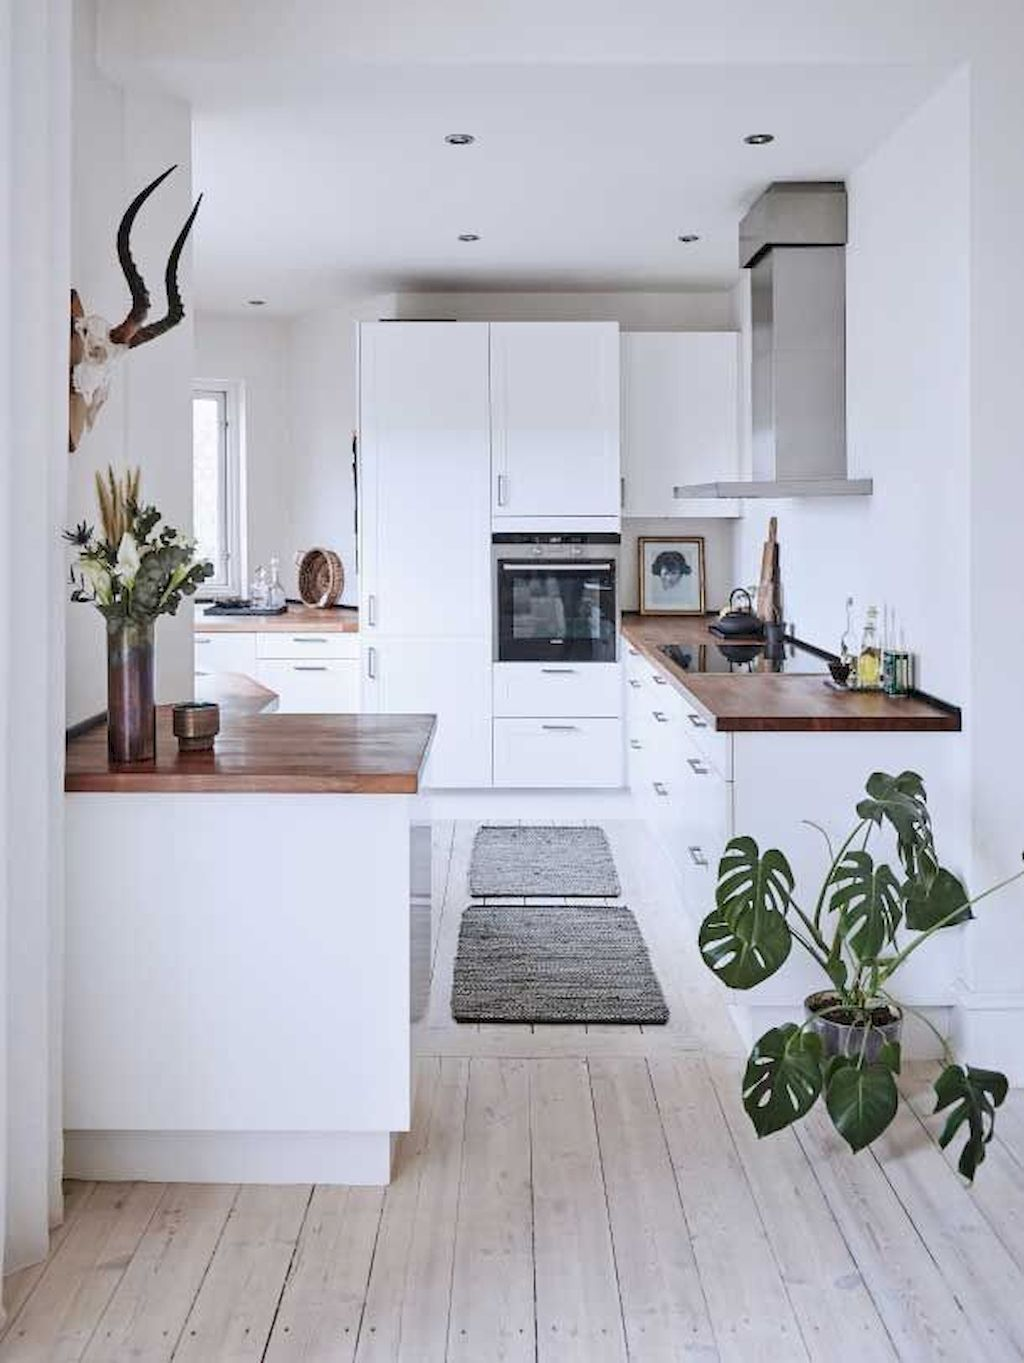 100 Small Scandinavian Kitchen Design Https Carrebianhome Com